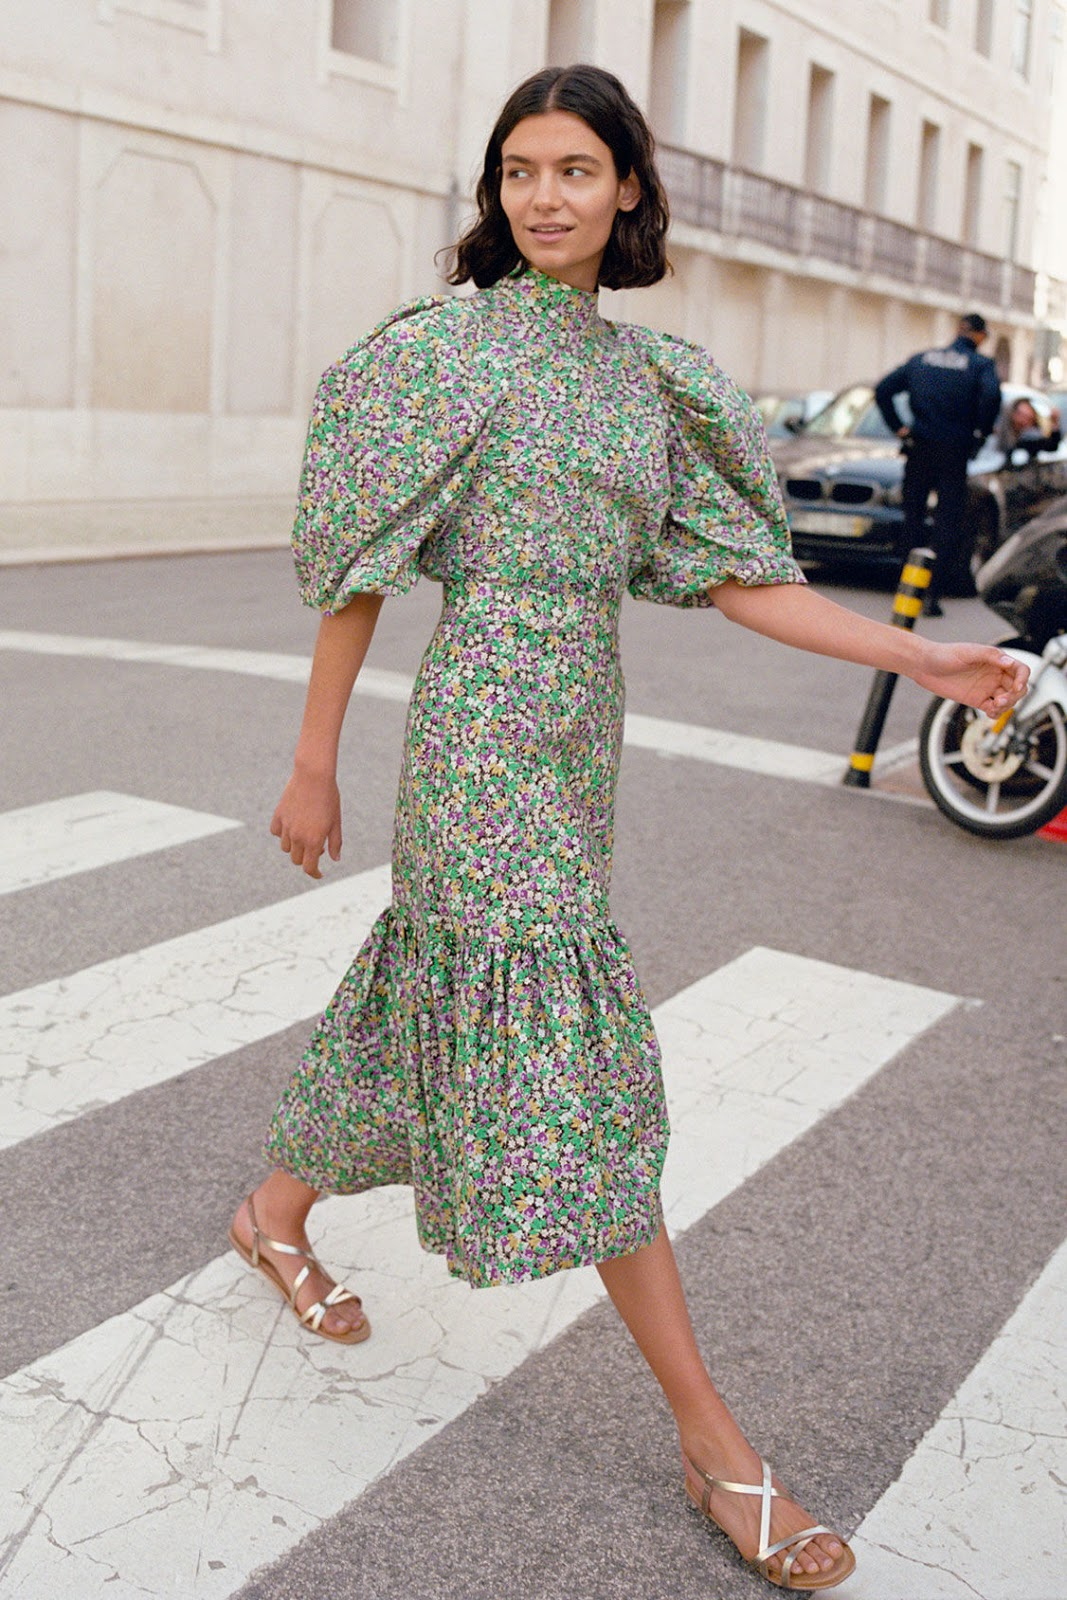 Affordable Yet Stylish Outfit for Spring and Summer — Floral Print Puff-Sleeve Top, Floral Print Midi Skirt, and Gold Flat Sandals